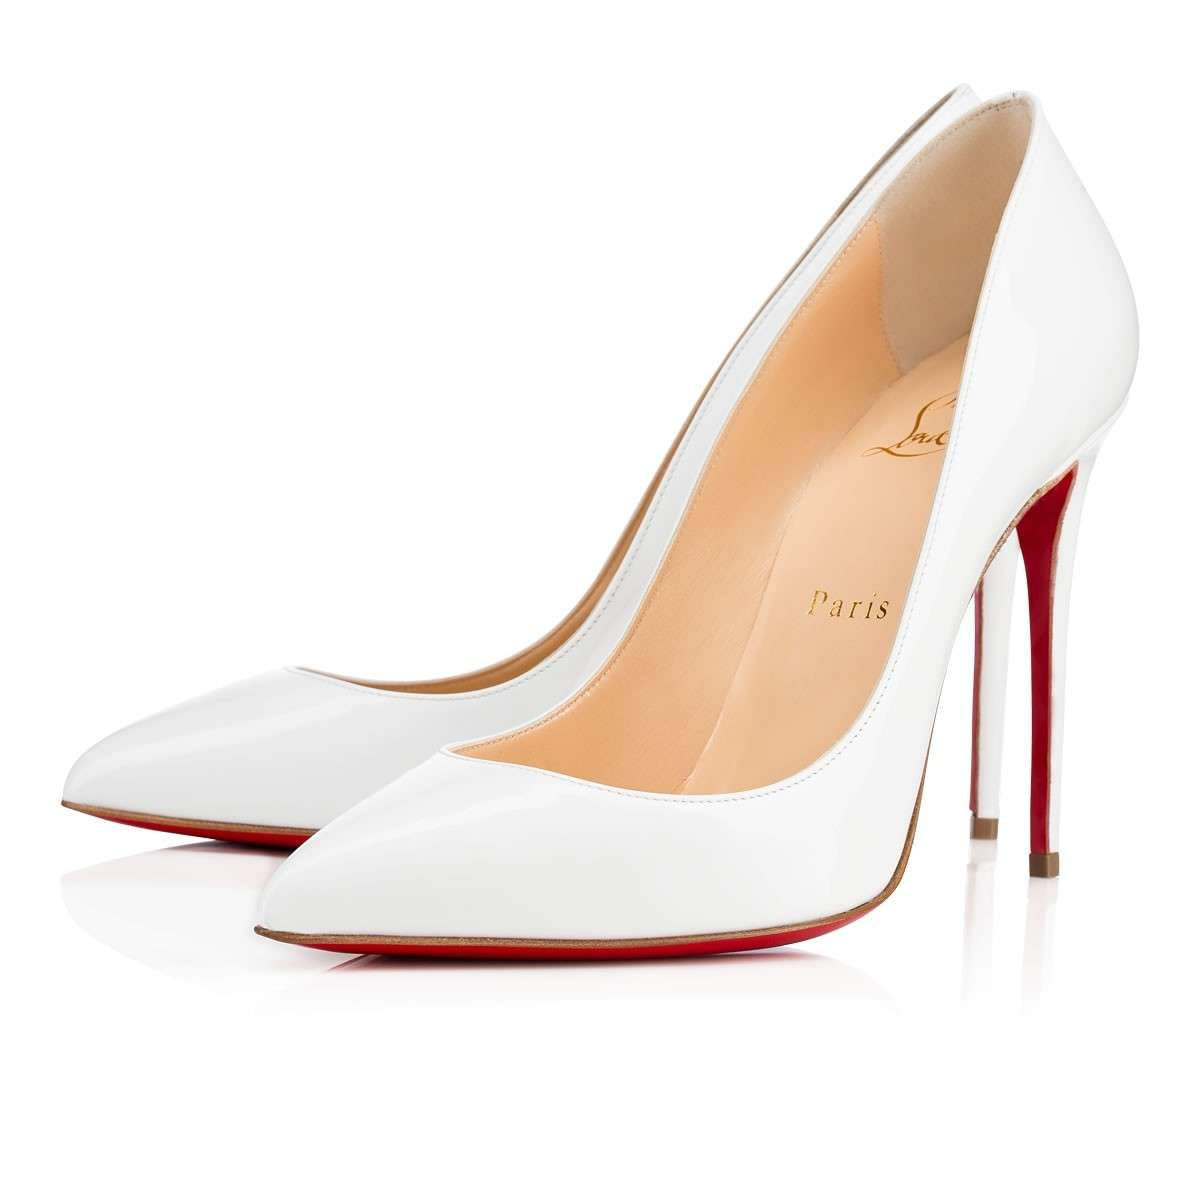 Pigalle bianche Christian Louboutin